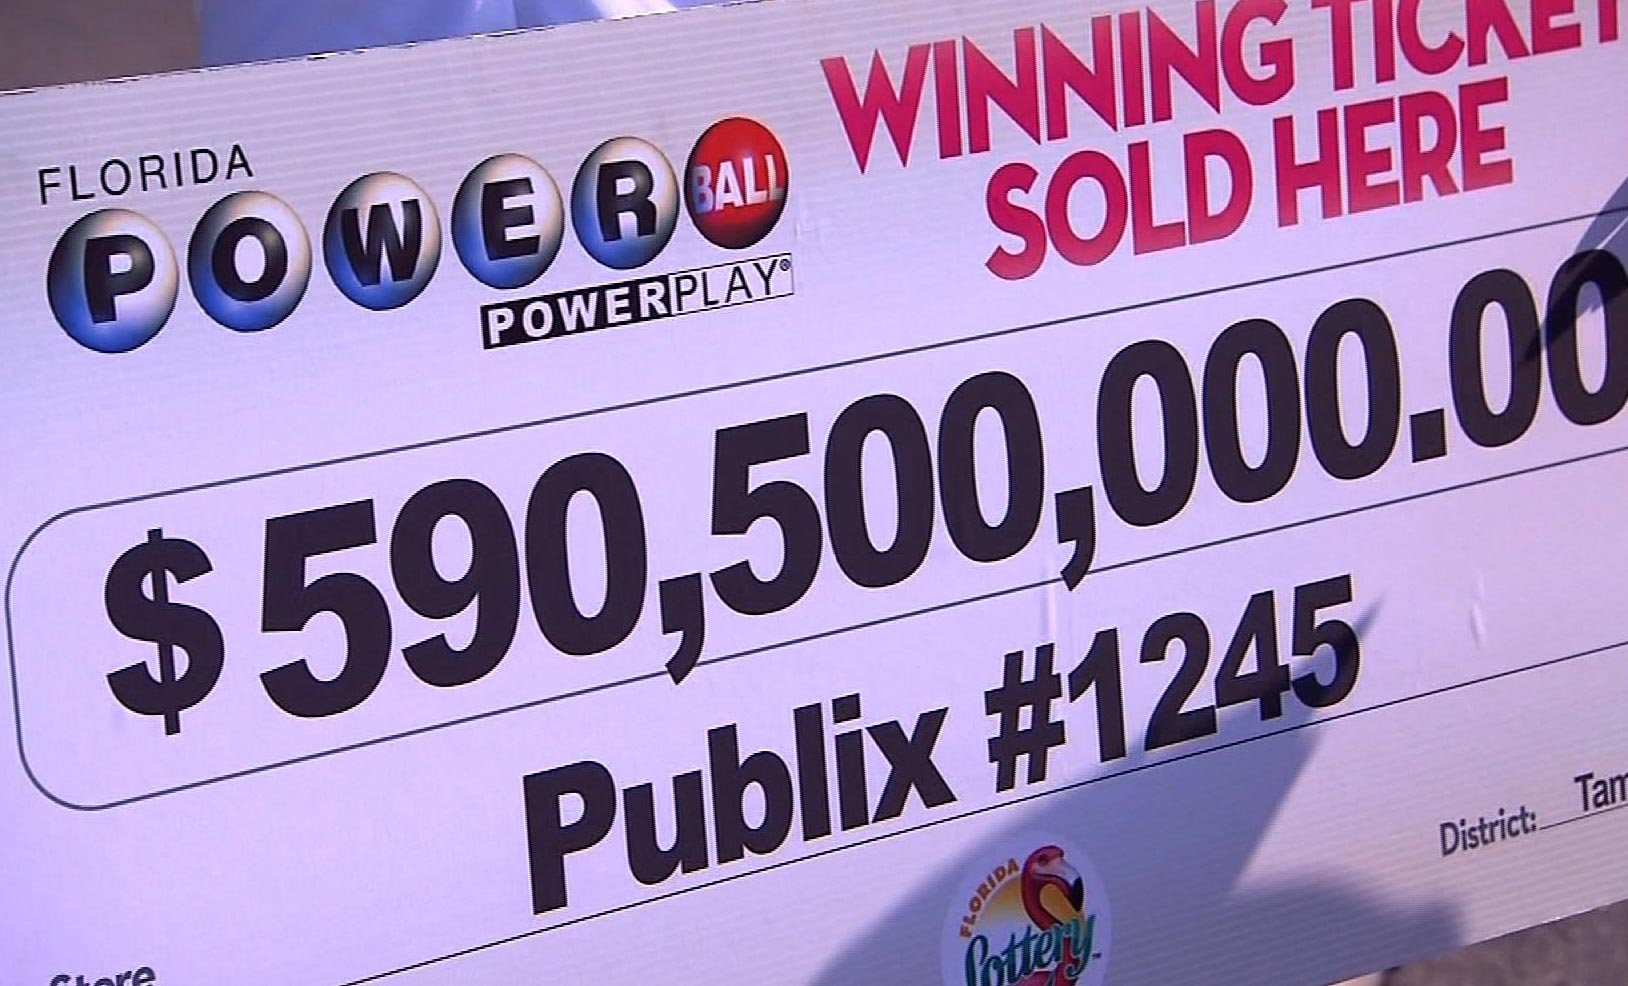 powerball-590m-sold-here-lottery.jpg